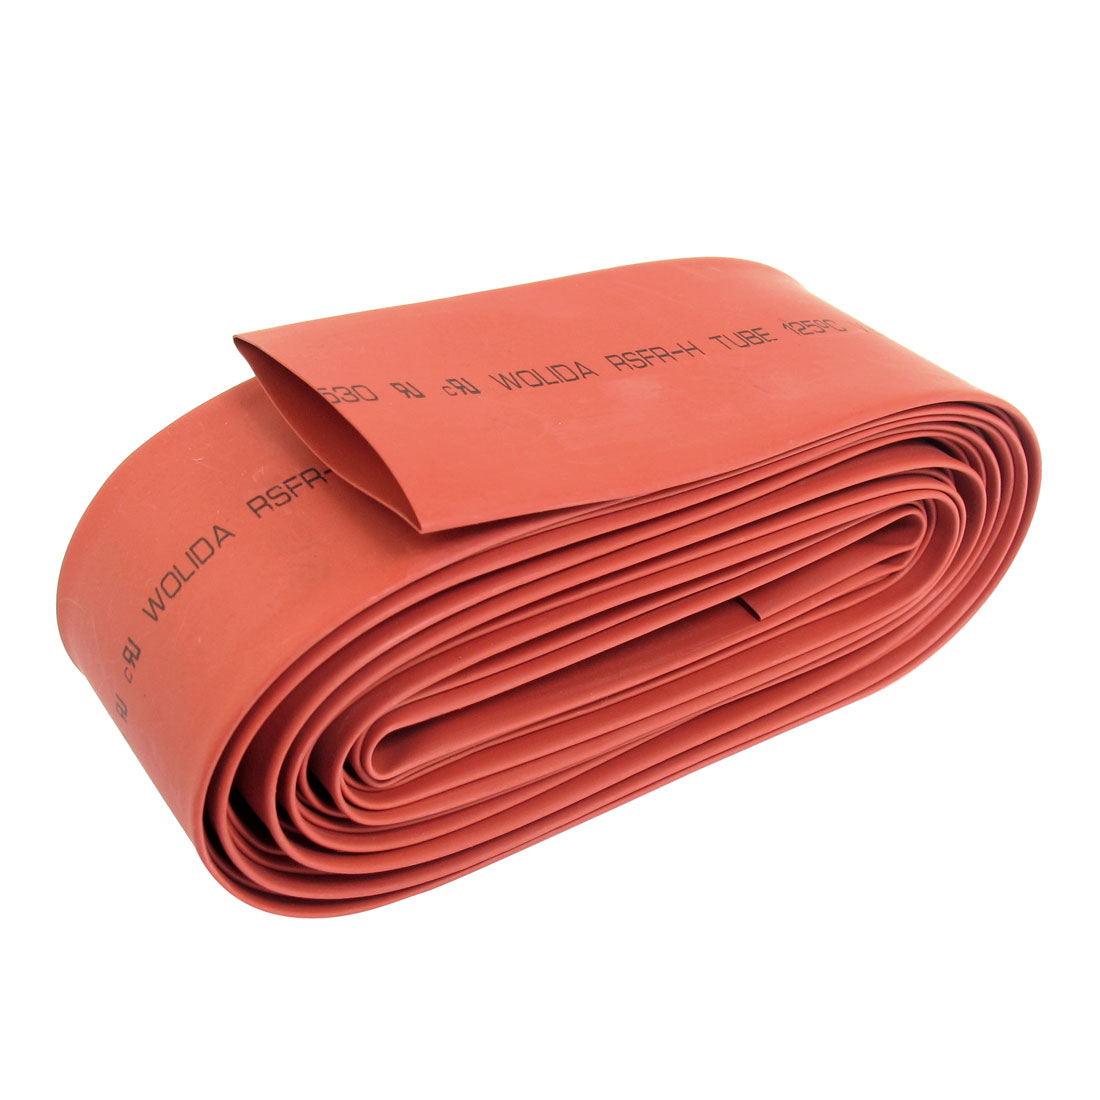 Uxcell Od 35Mm Dia Heat Shrink Tubing Electric Wire Cable Wrap Sleeve Red .0.9m1m2m3m5.4m5m